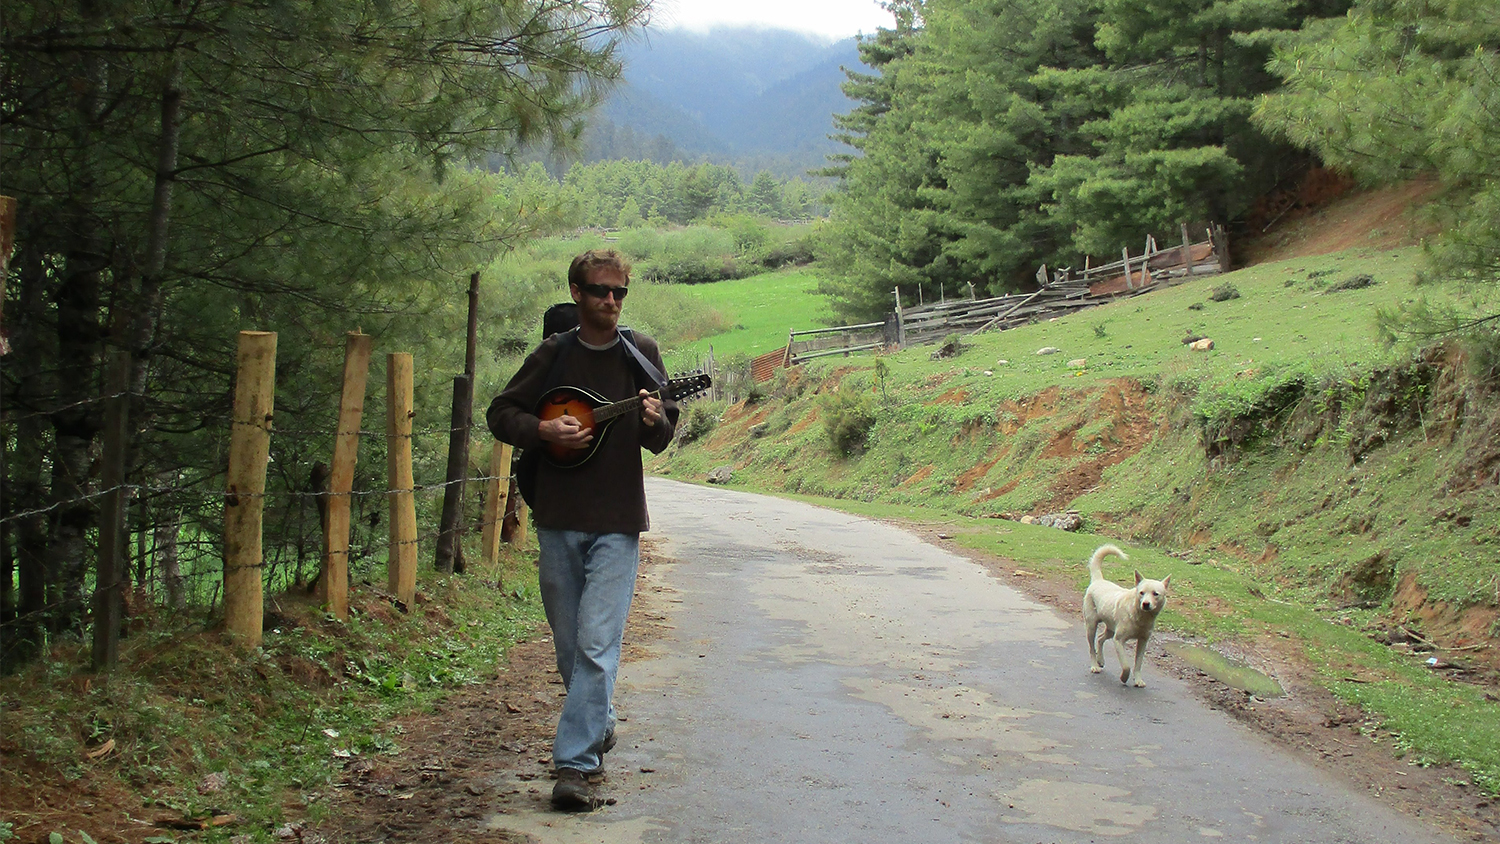 A young man carrying a backpack plays a string instrument while walking along a pathway next to a dog.